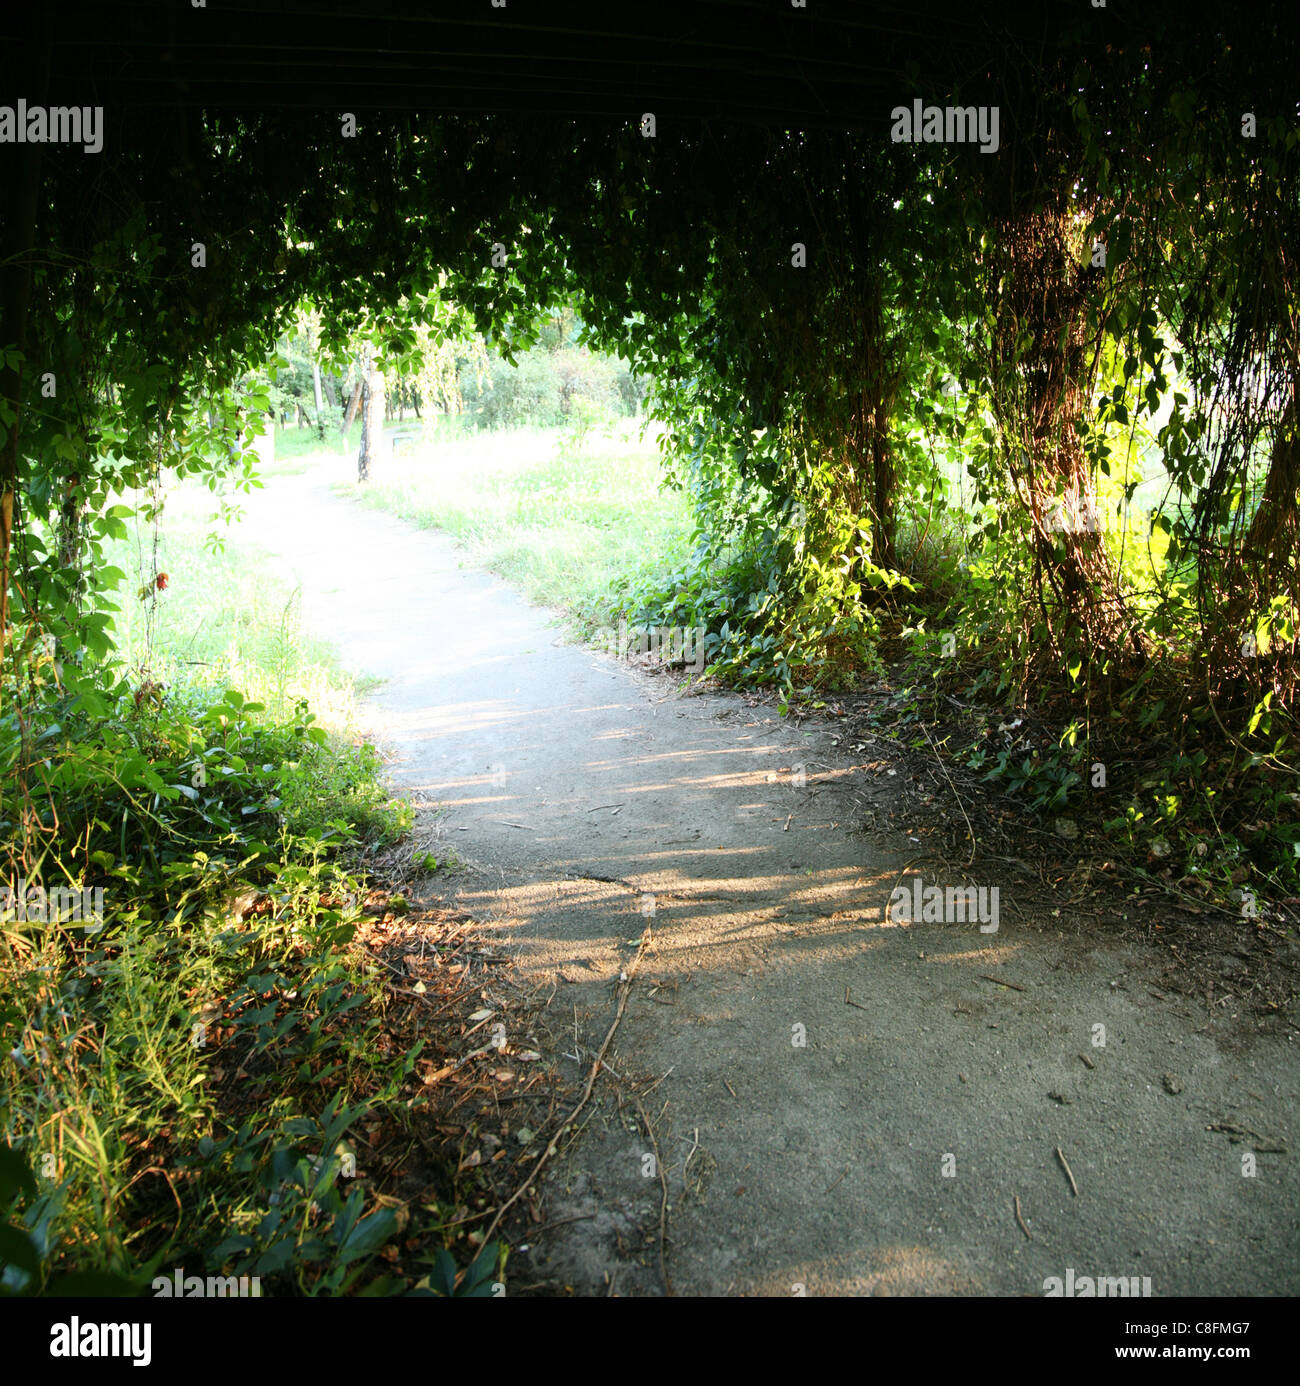 Park scene. Trees forms an arch. - Stock Image